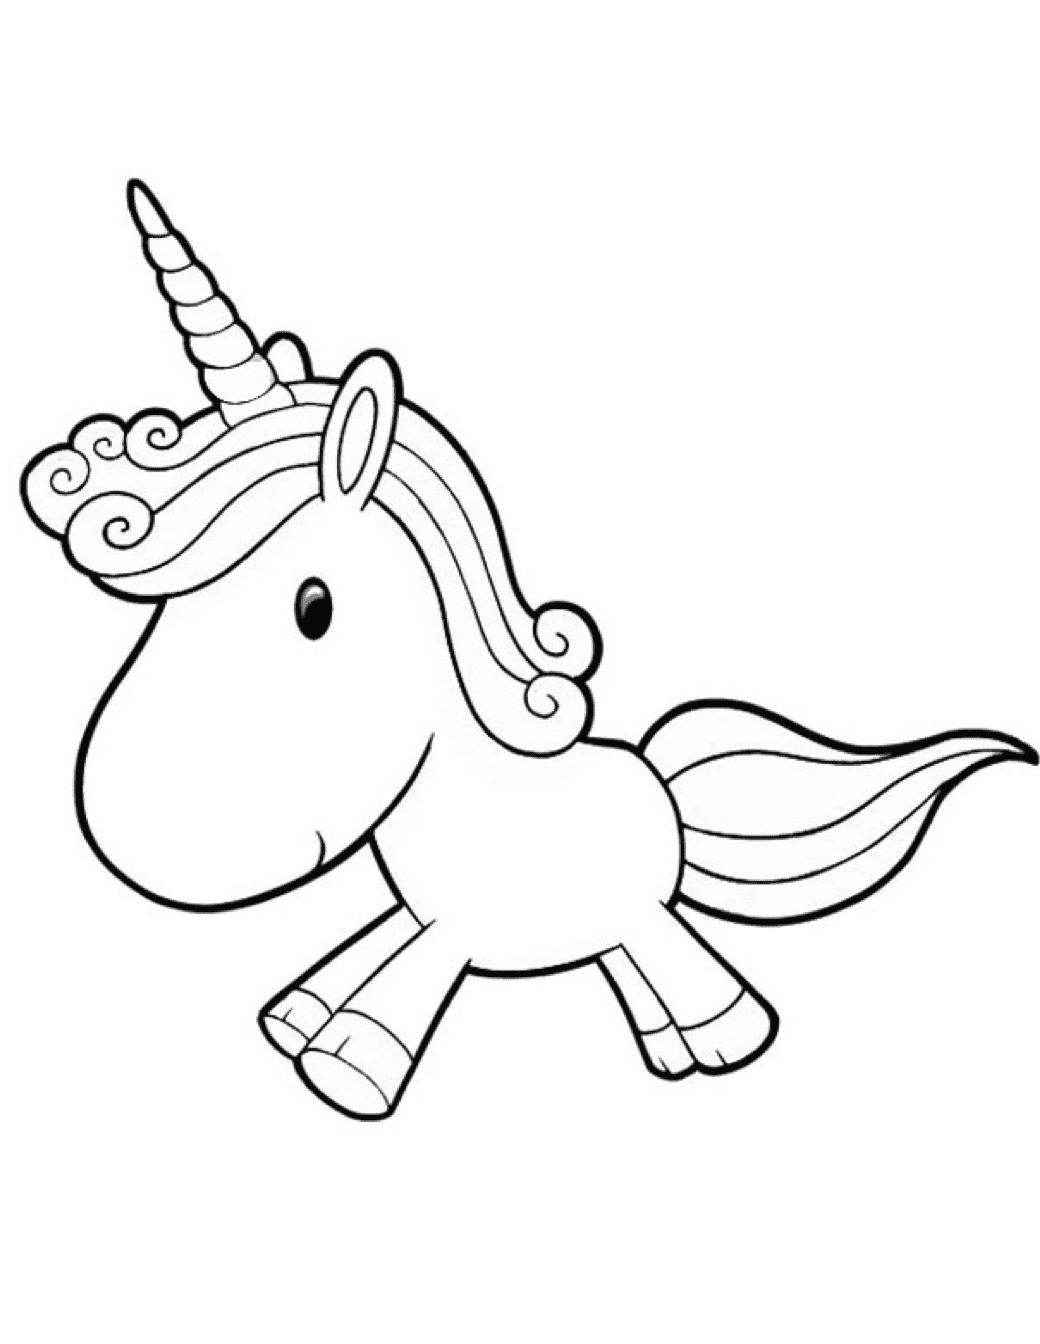 Unicorn Coloring Pages Printable Cartoonunicorncoloringpage  Coloringpagebook